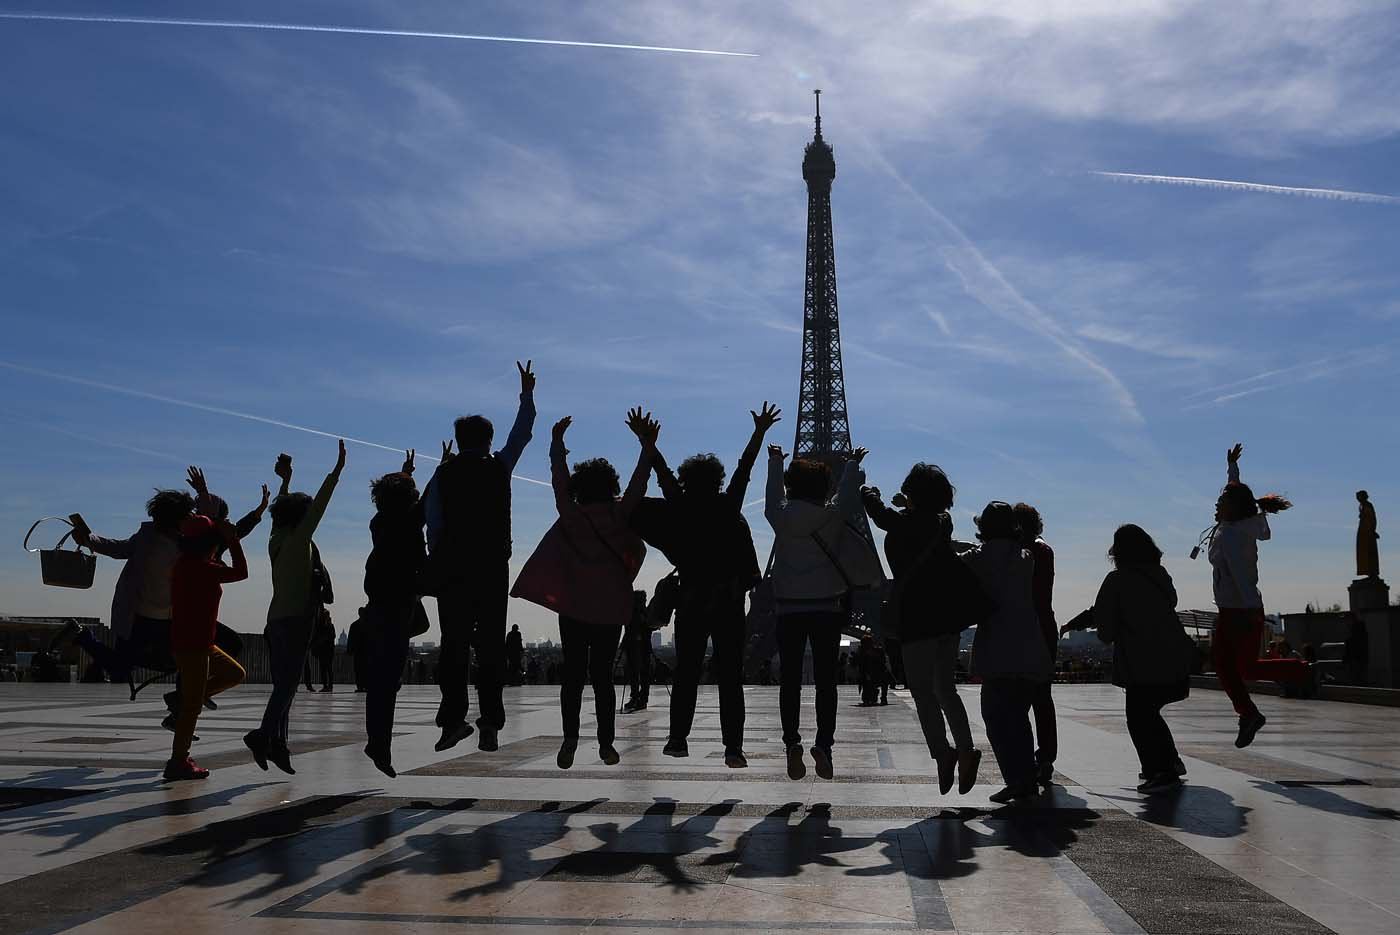 (FILES) This file photo taken on March 30, 2017 shows tourists jumping as they pose for a family photo on the Esplanade du Trocadero near the Eiffel Tower in Paris. After a decline in 2016 due to the terror attacks in Paris and Nice, tourism in Paris and Ile de France is in much better shape in the first half of 2017, with 1,5 million tourists and 3,3 million overnight stays more than a year ago. / AFP PHOTO / GABRIEL BOUYS